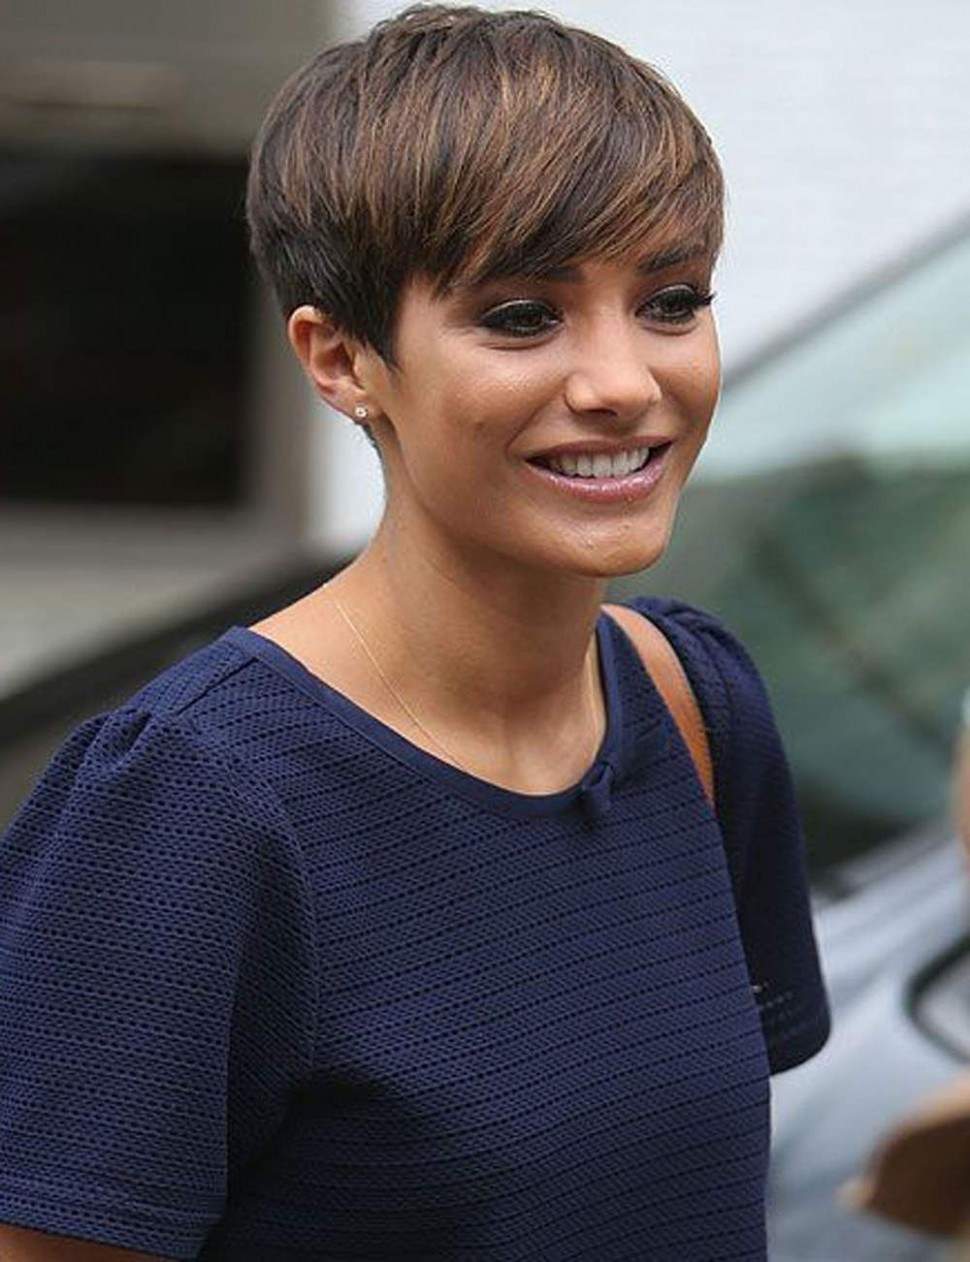 Coolest Ideas About Dark Brown Hair With Caramel Highlights 10 Dark Pixie Cut With Highlights